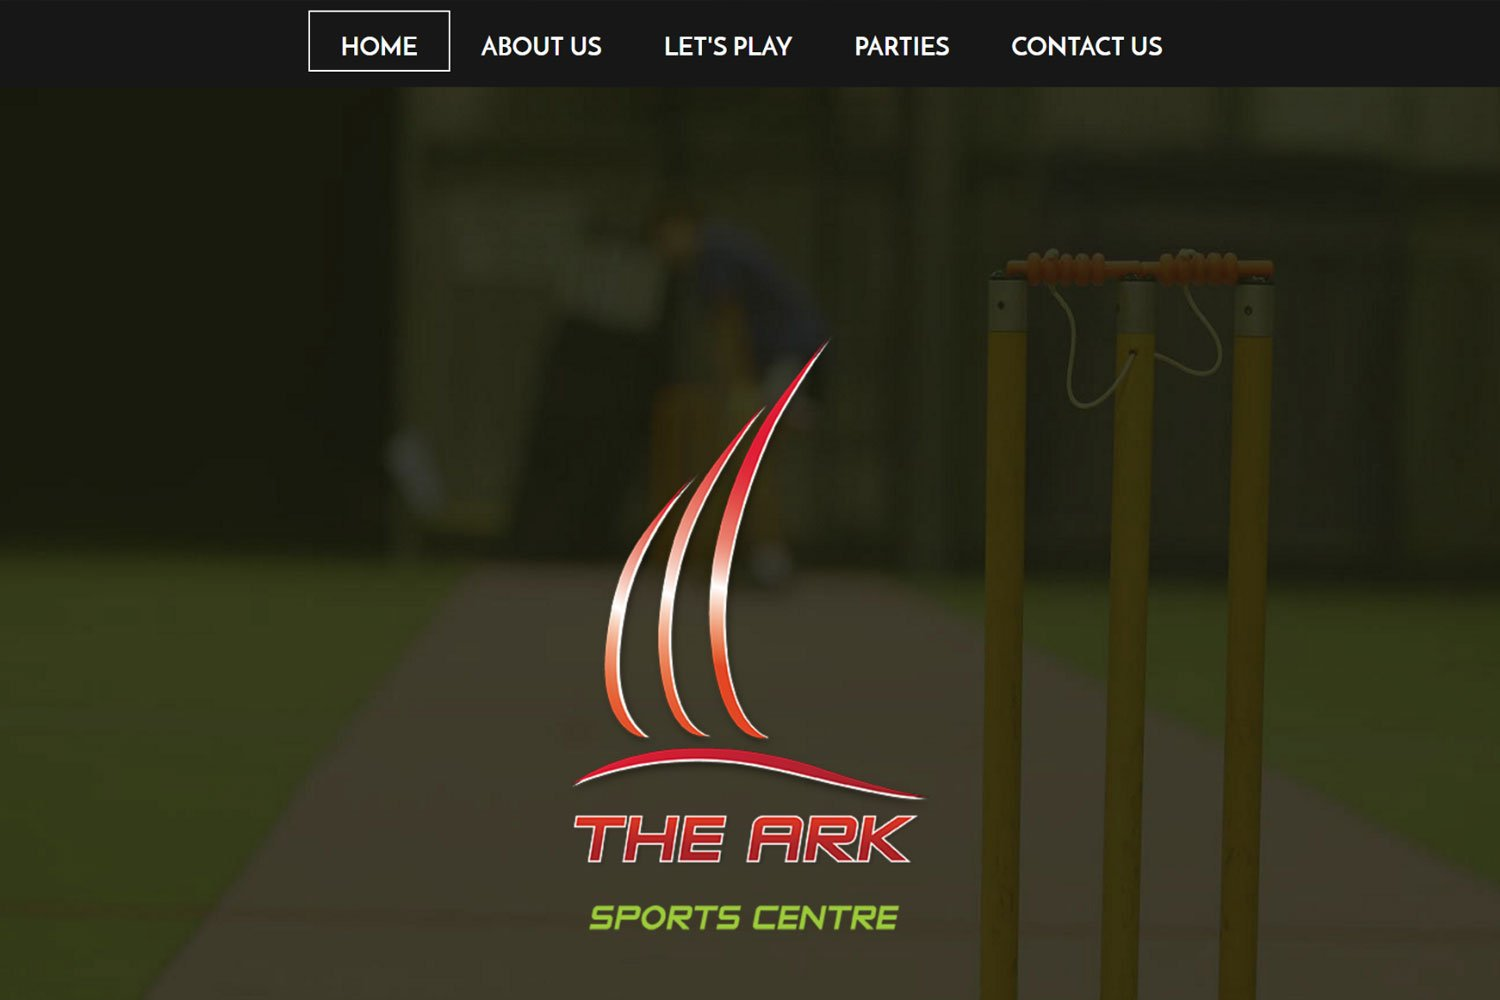 Edgezone Media's Client - Ark Sports Centre - www.ArkSports.com.au